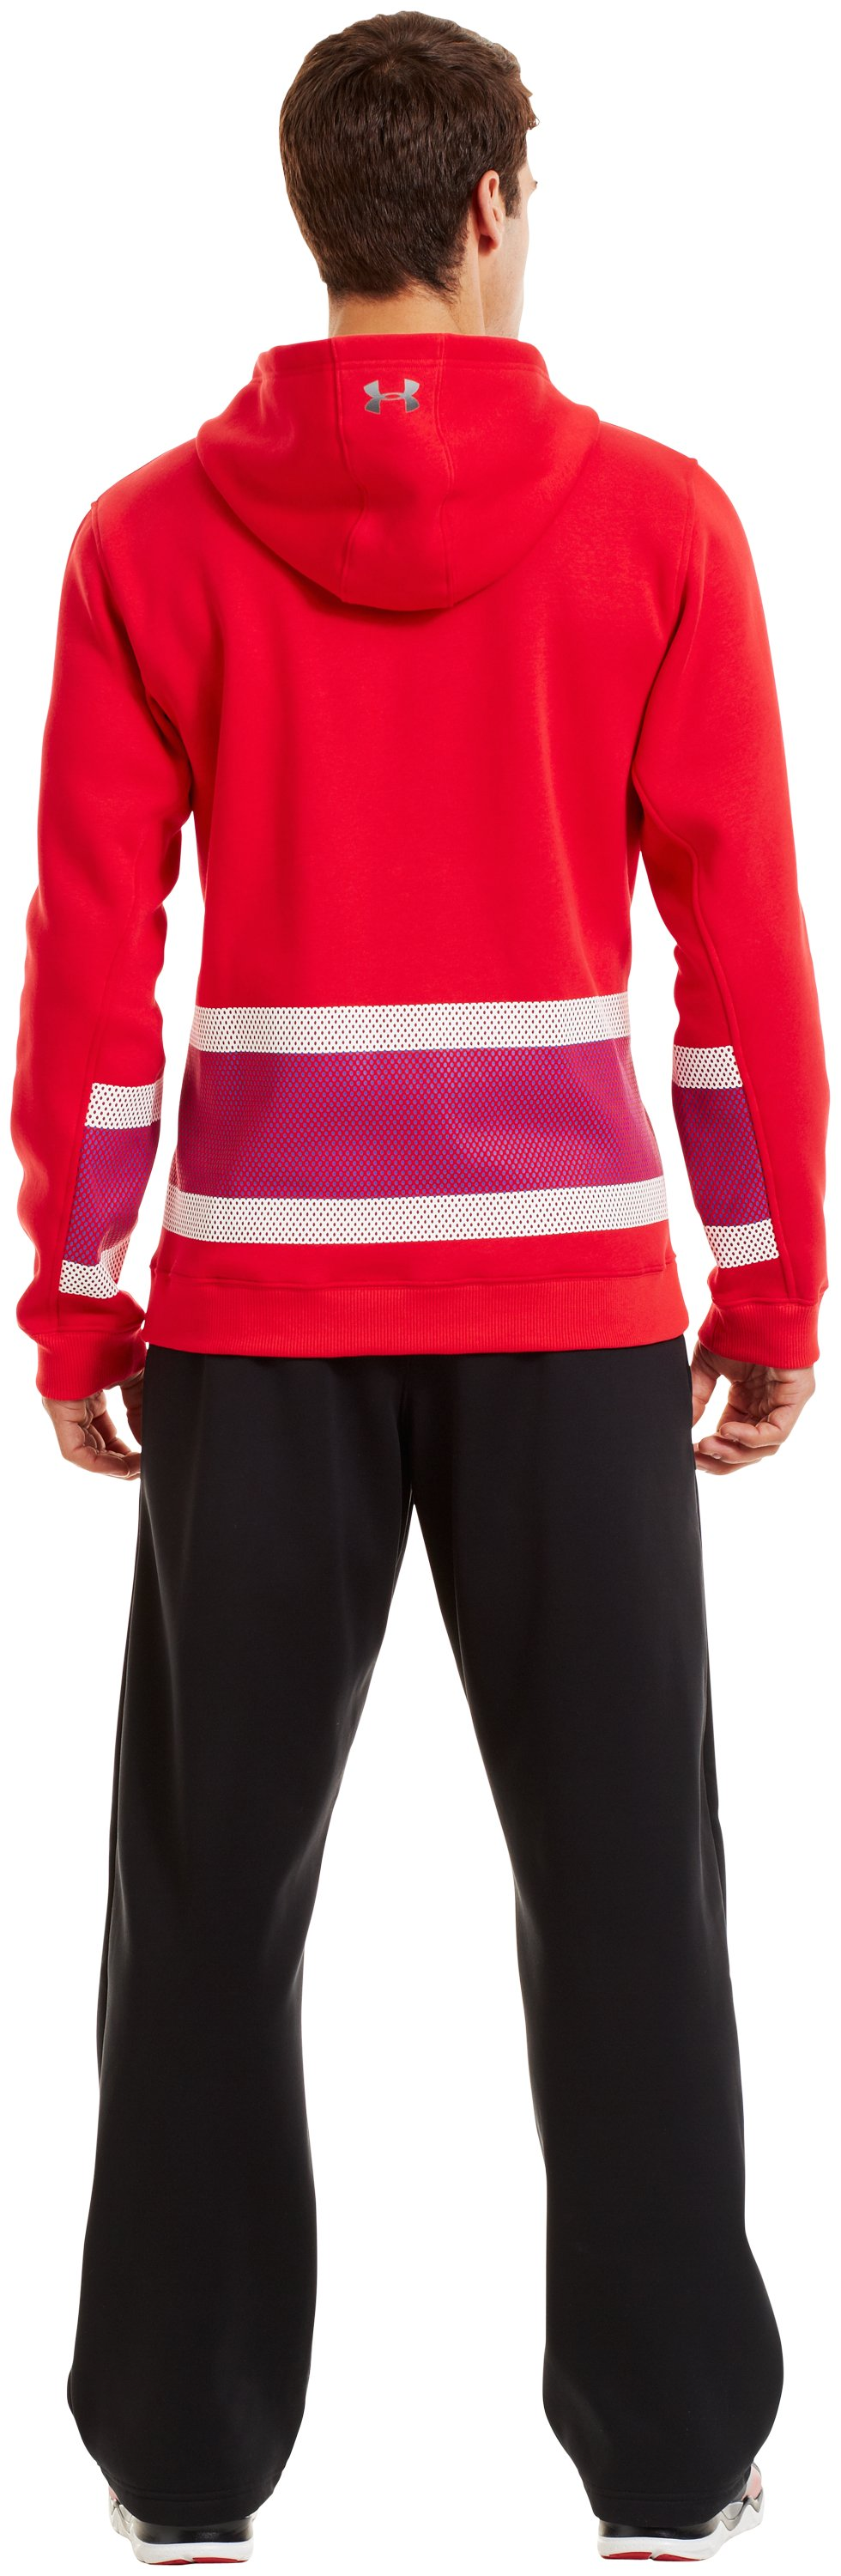 Men's Charged Cotton® Storm Chuck-A-Puck Hoodie, Red, Back